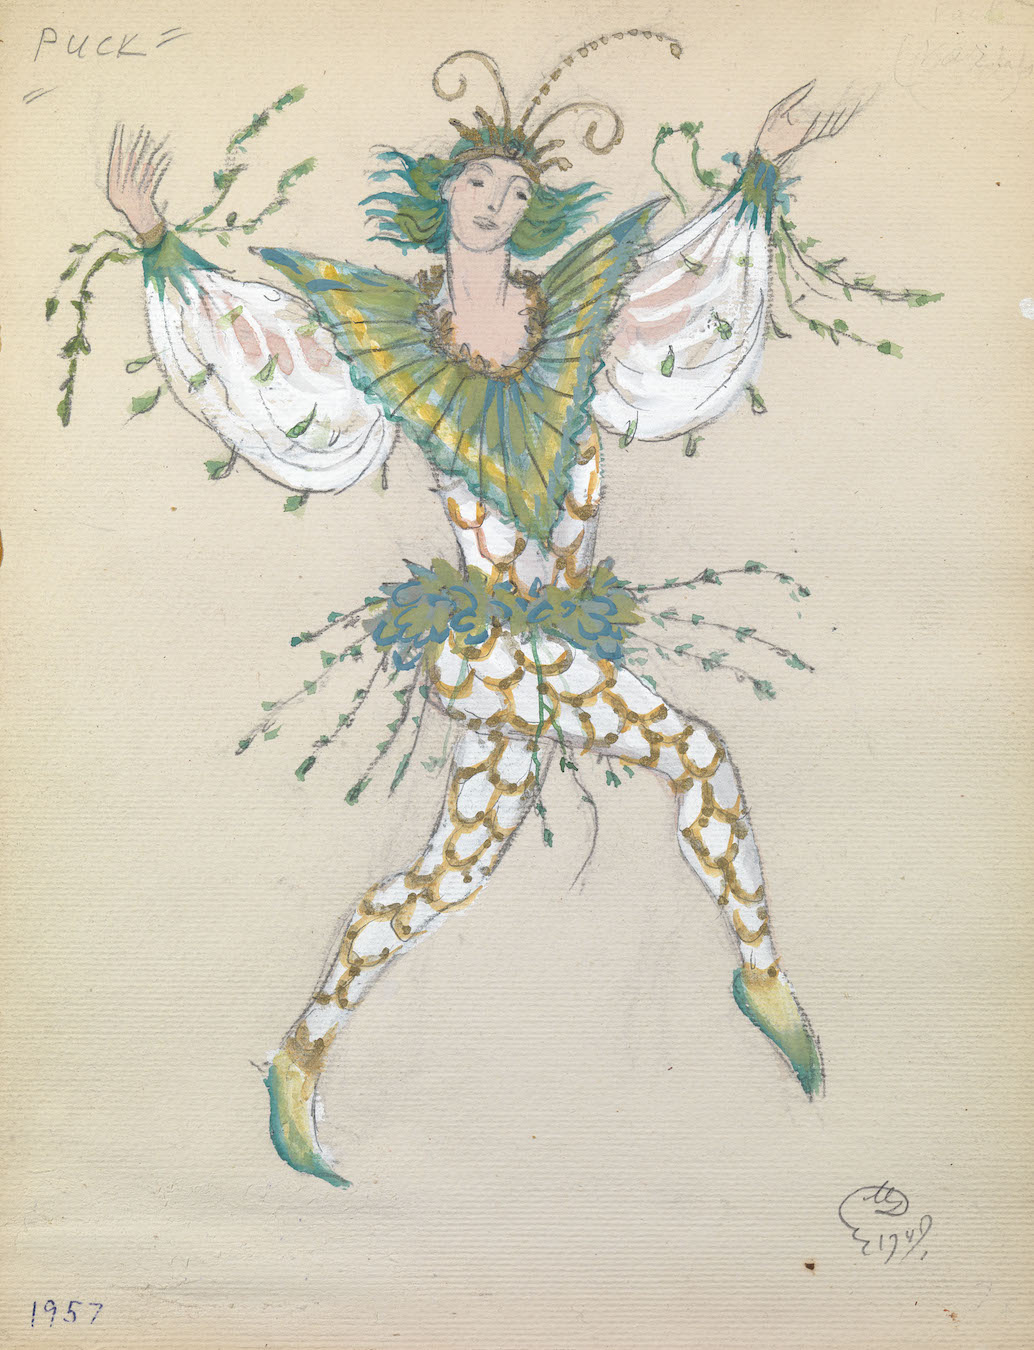 A Collection of Set and Costume Designs for Les  Ballets Ruth Sorel, accompanied by Photoengraved Plates, Photo Prints and Repertoire Brochures, 48 pieces